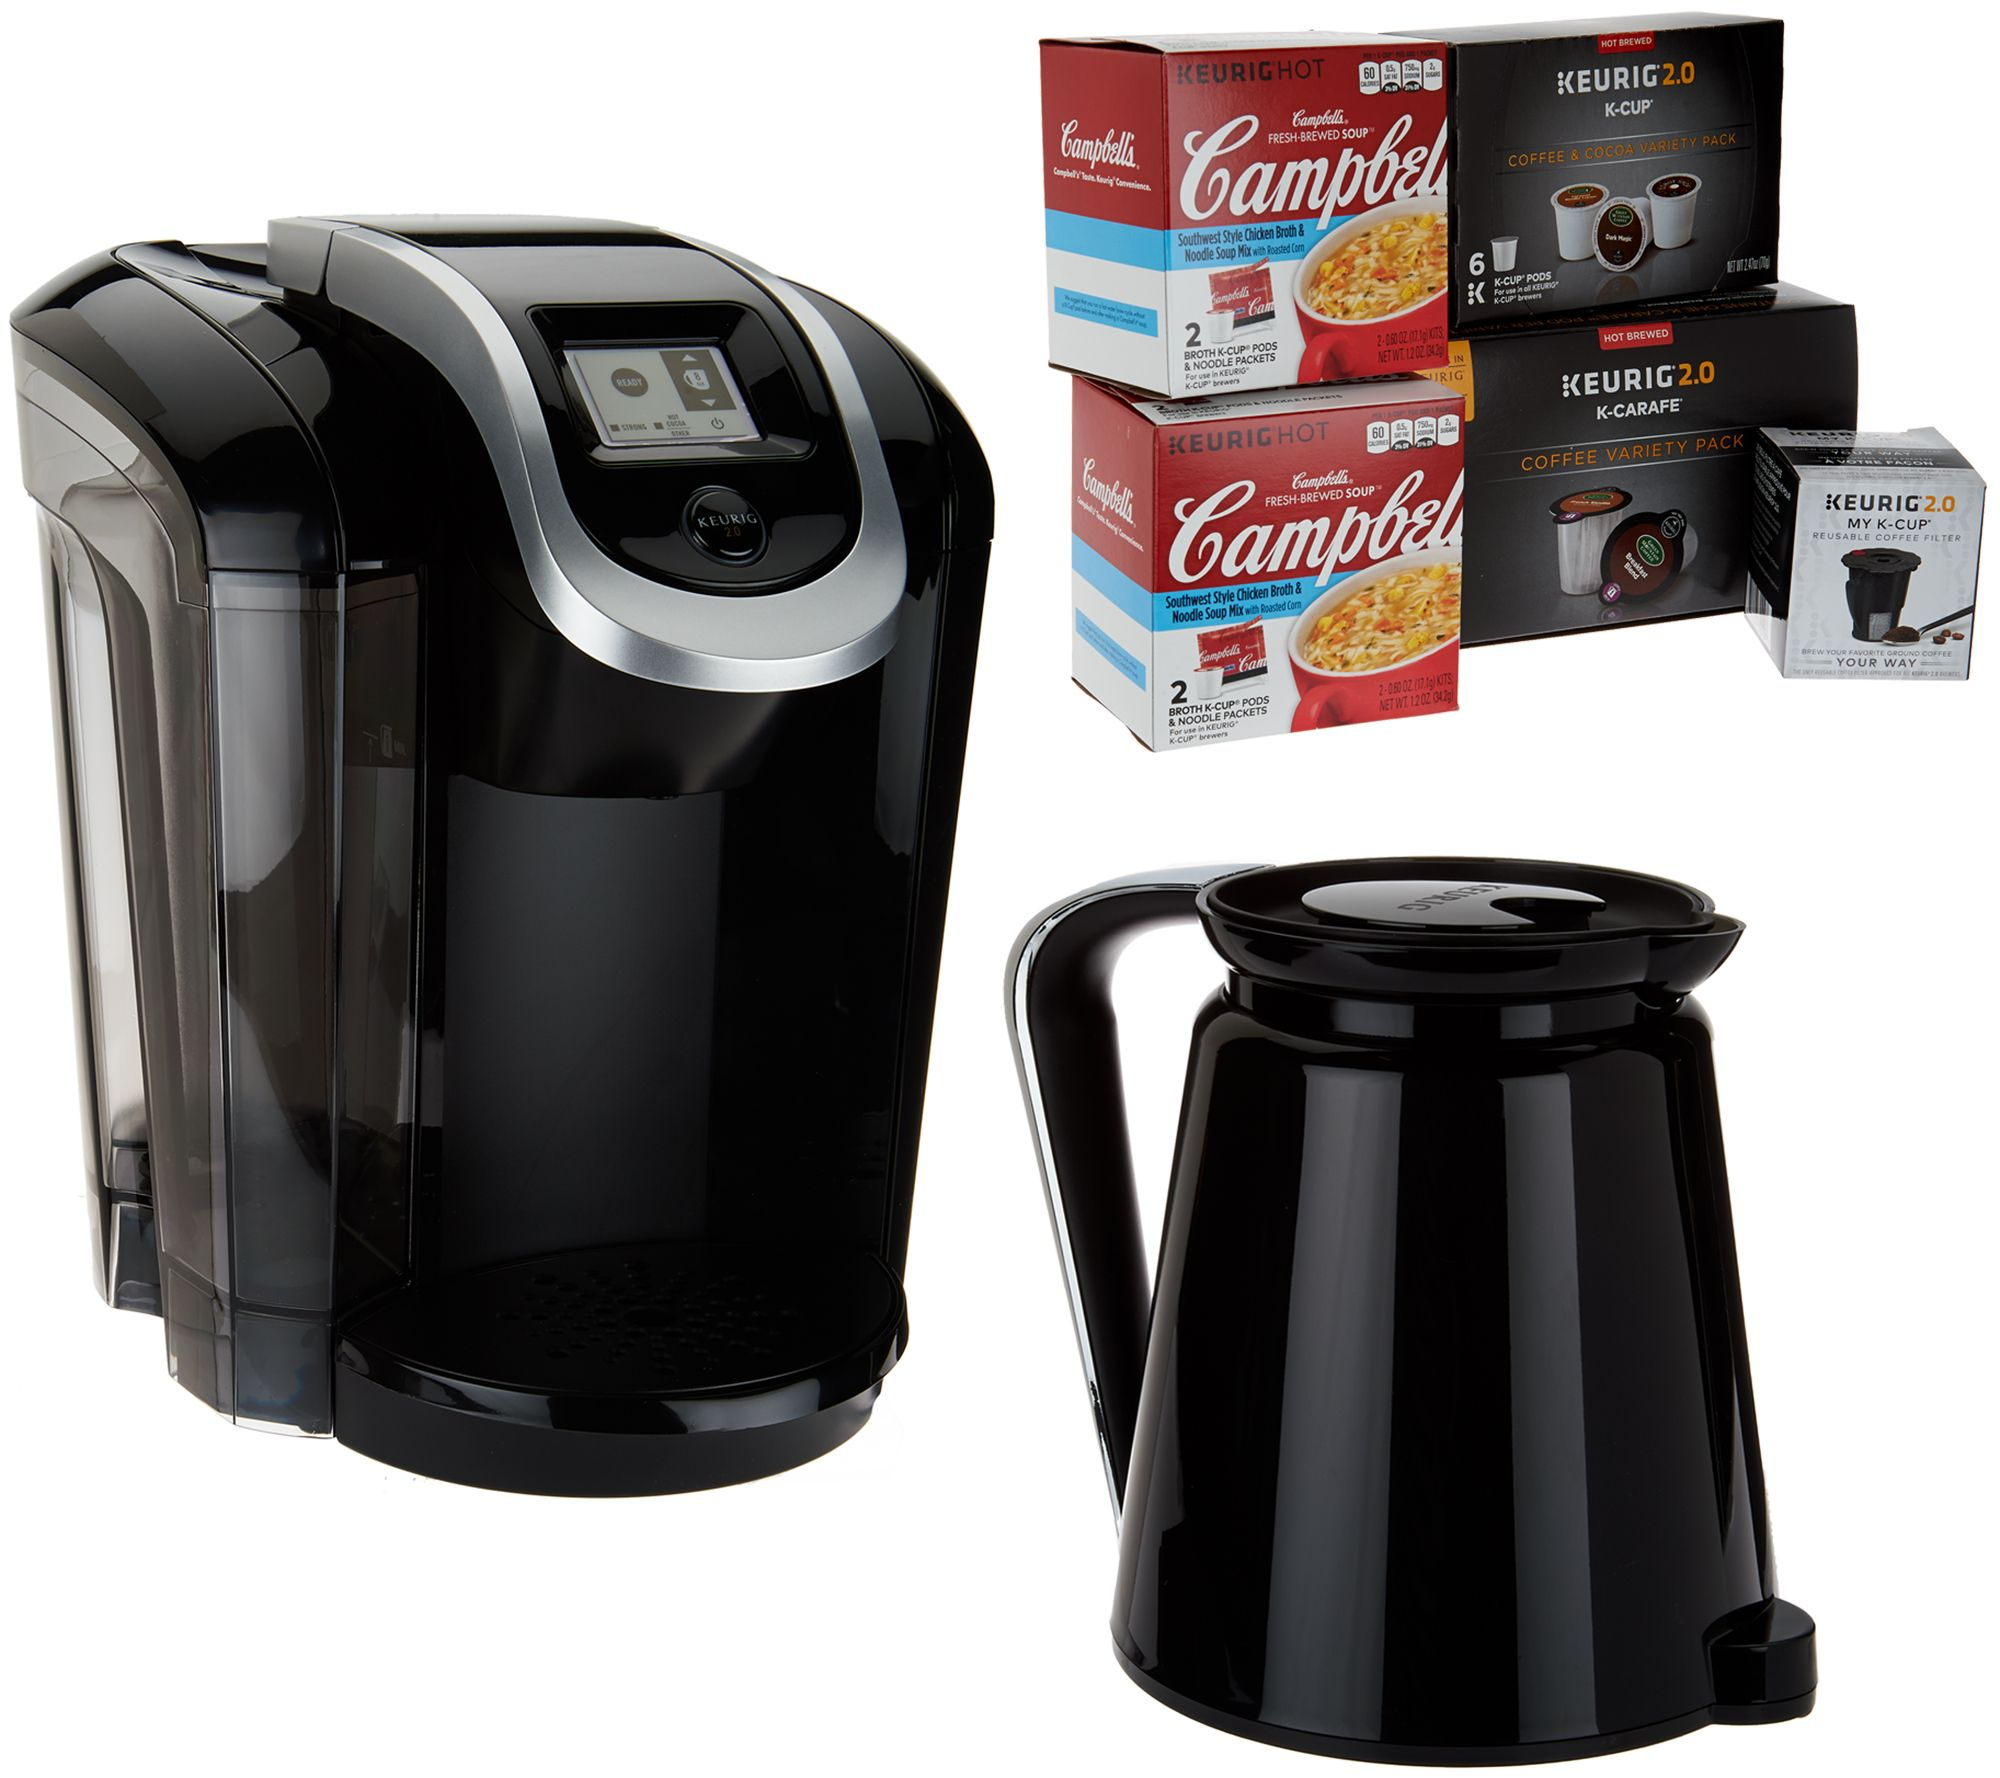 keurig 20 k350 coffee maker w my kcup 10 kcup pods u0026 4 soup kits page 1 u2014 qvccom